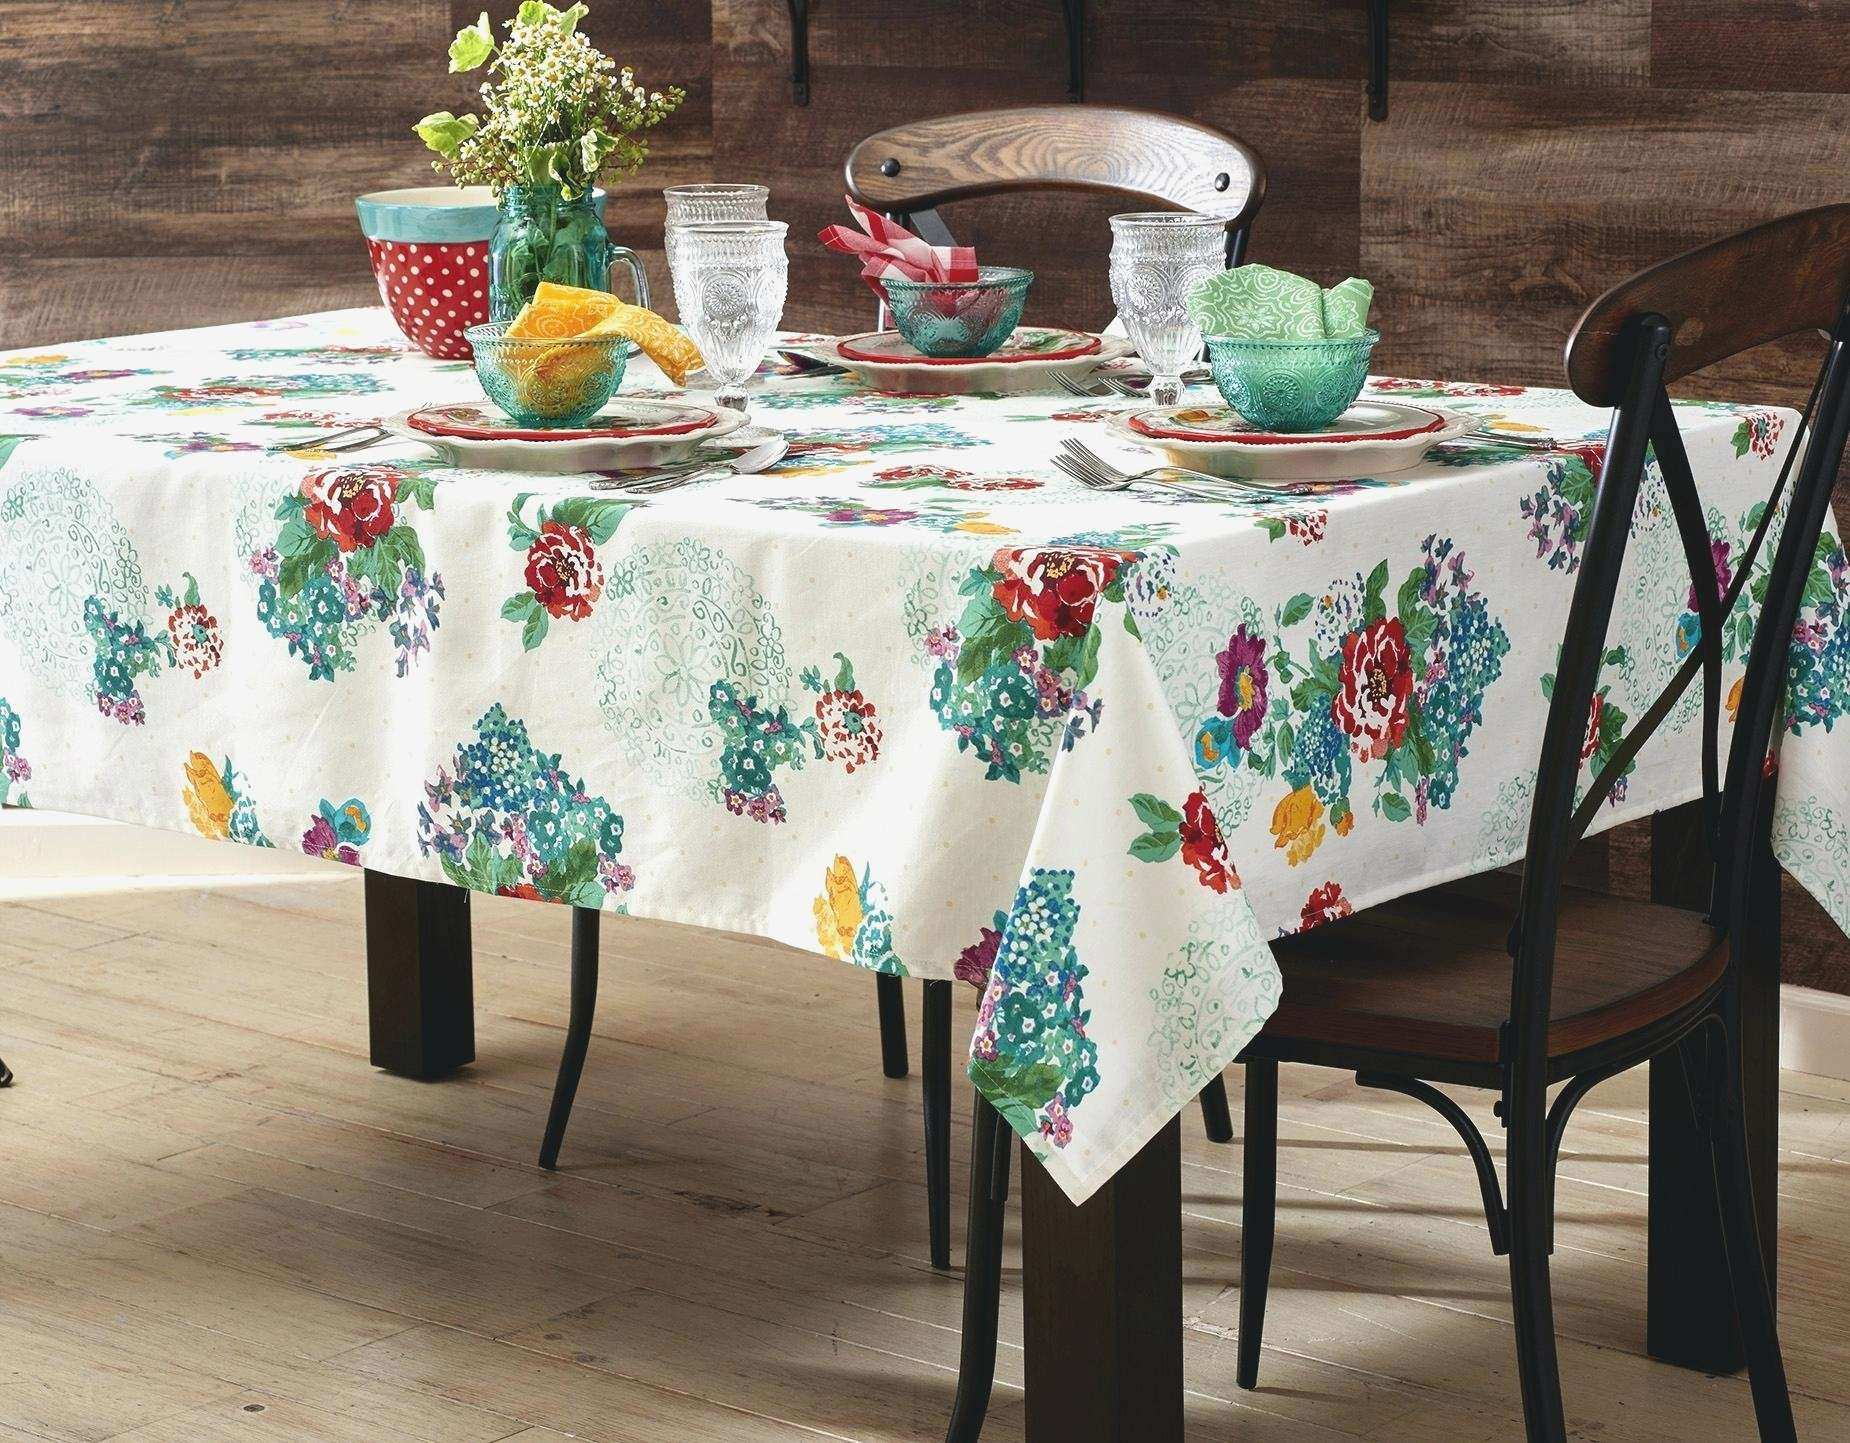 coffee table cloth cover design ideas tablecloths for accent cloths incredible round with tablecloth garden furniture placemat pottery barn nightstand espresso acrylic sofa